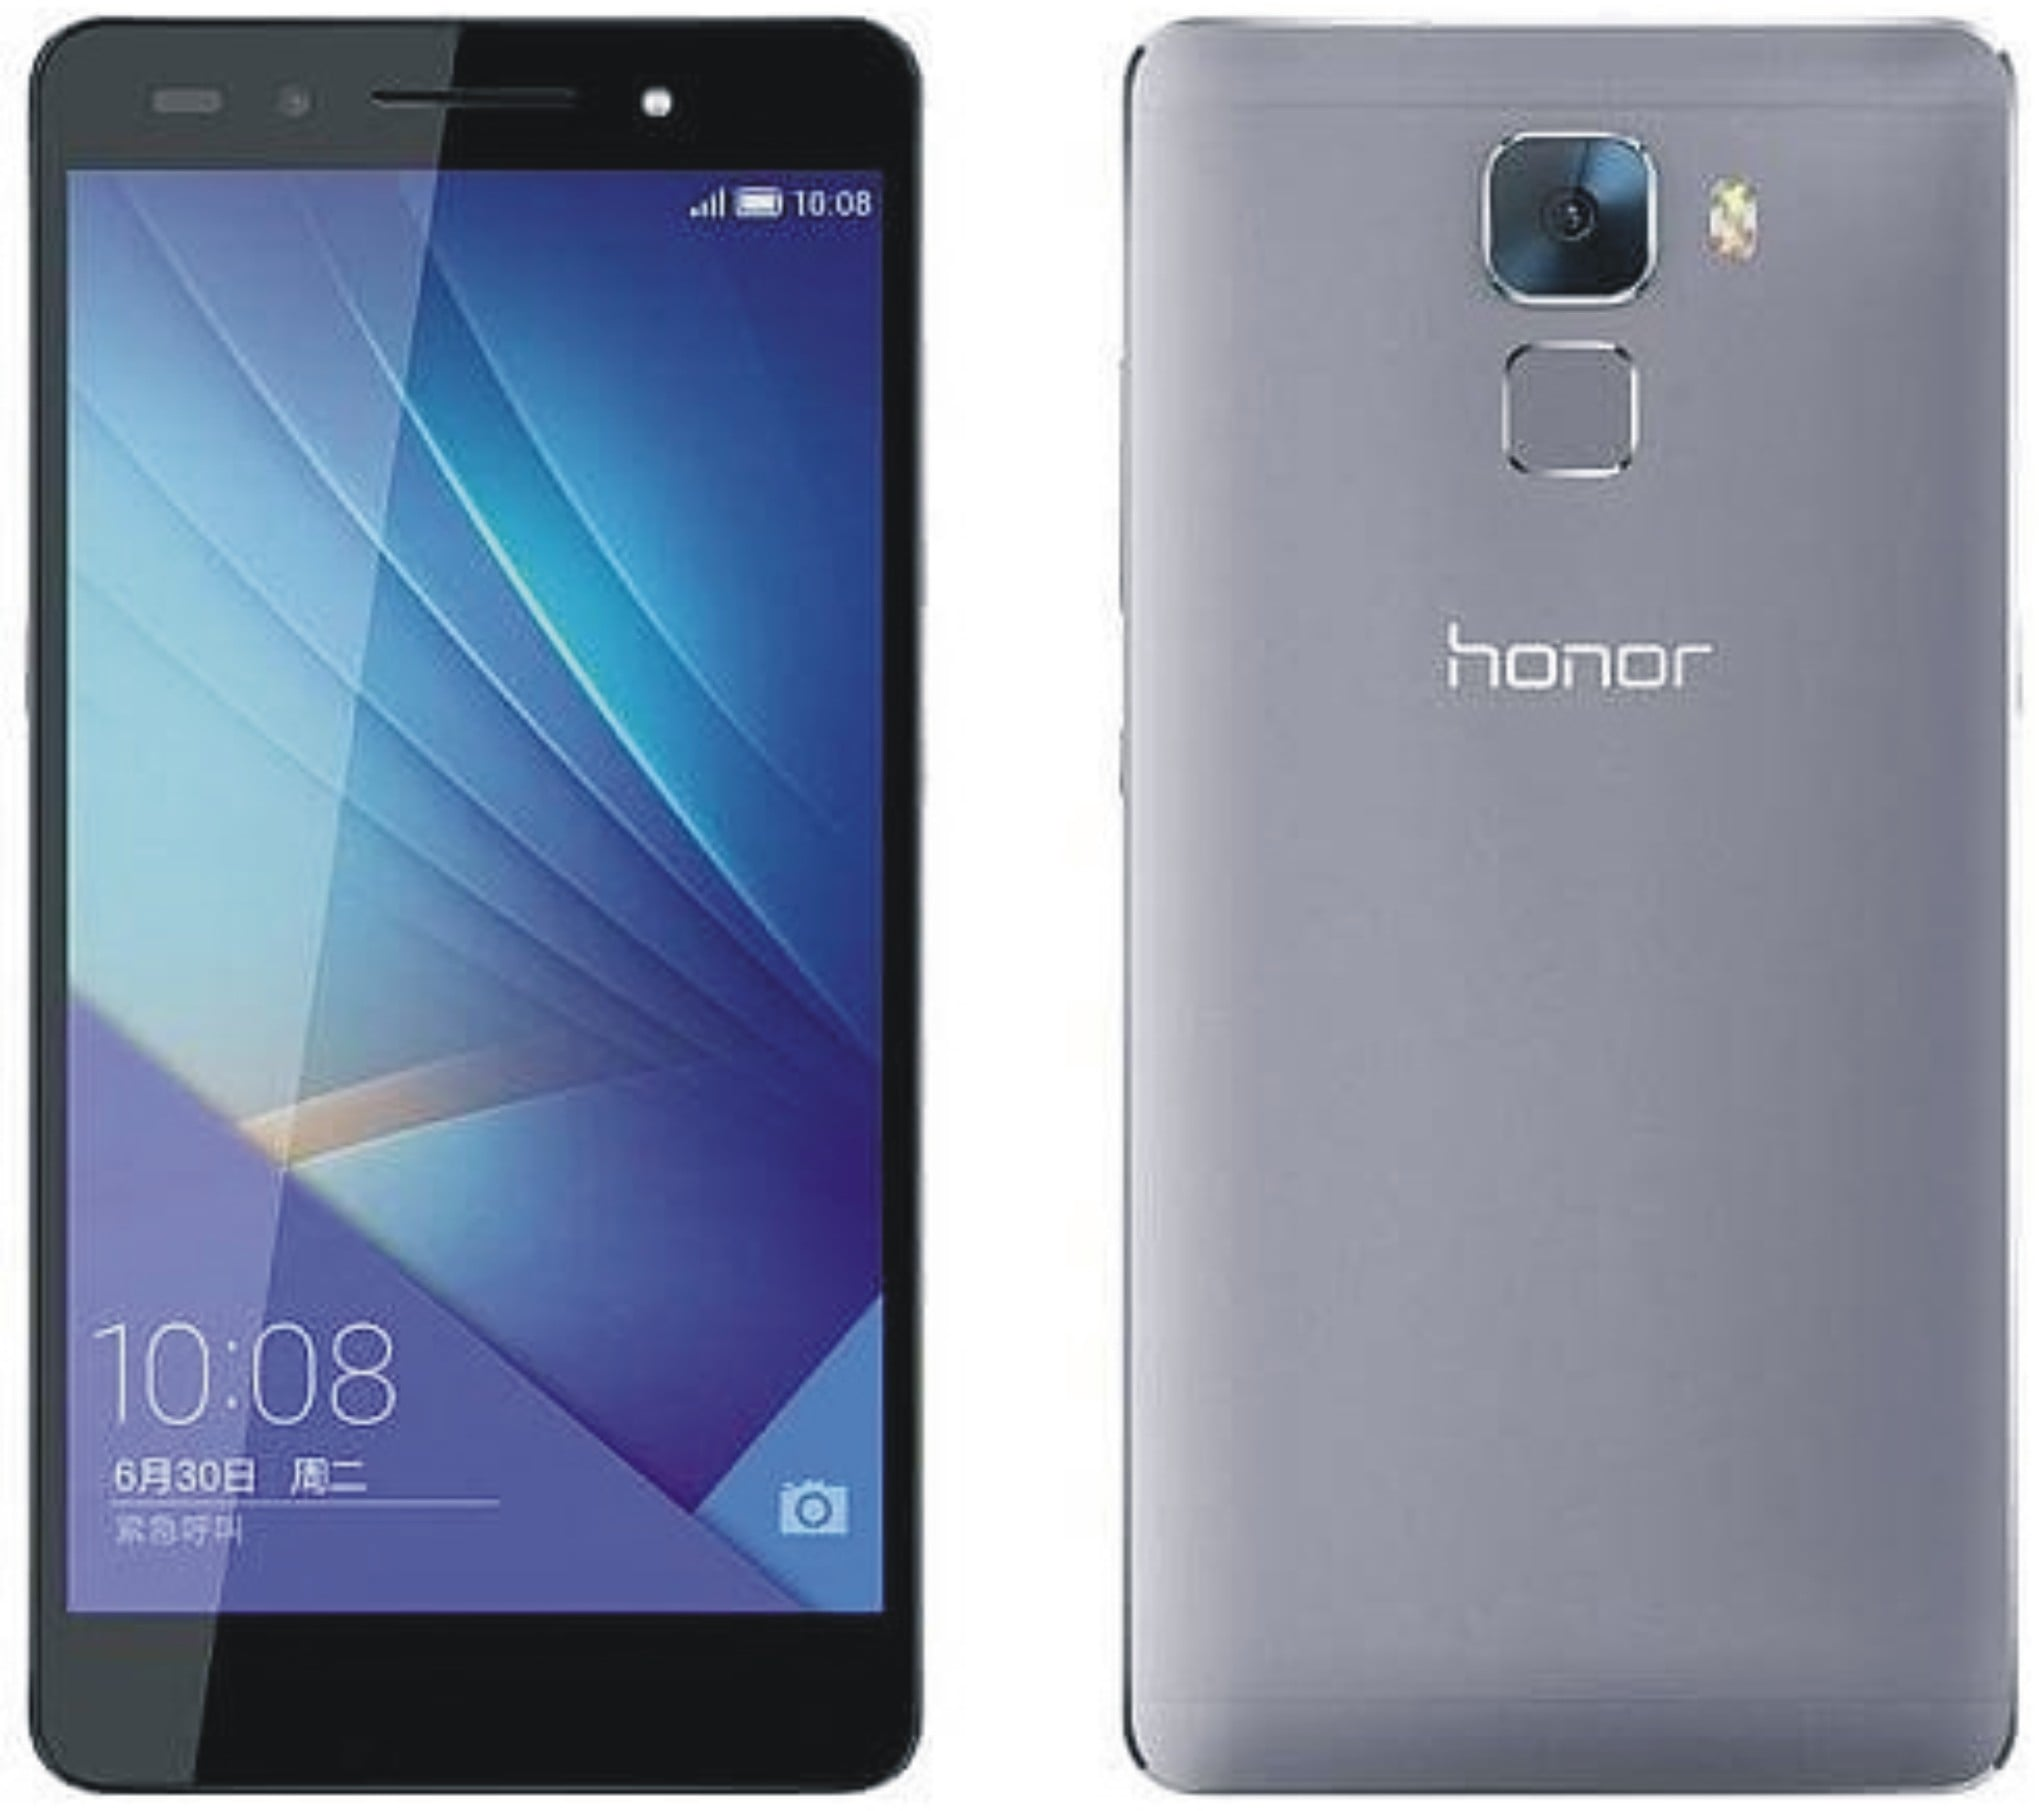 Huawei Honor 5X built with strong Camera Specs will rule the market